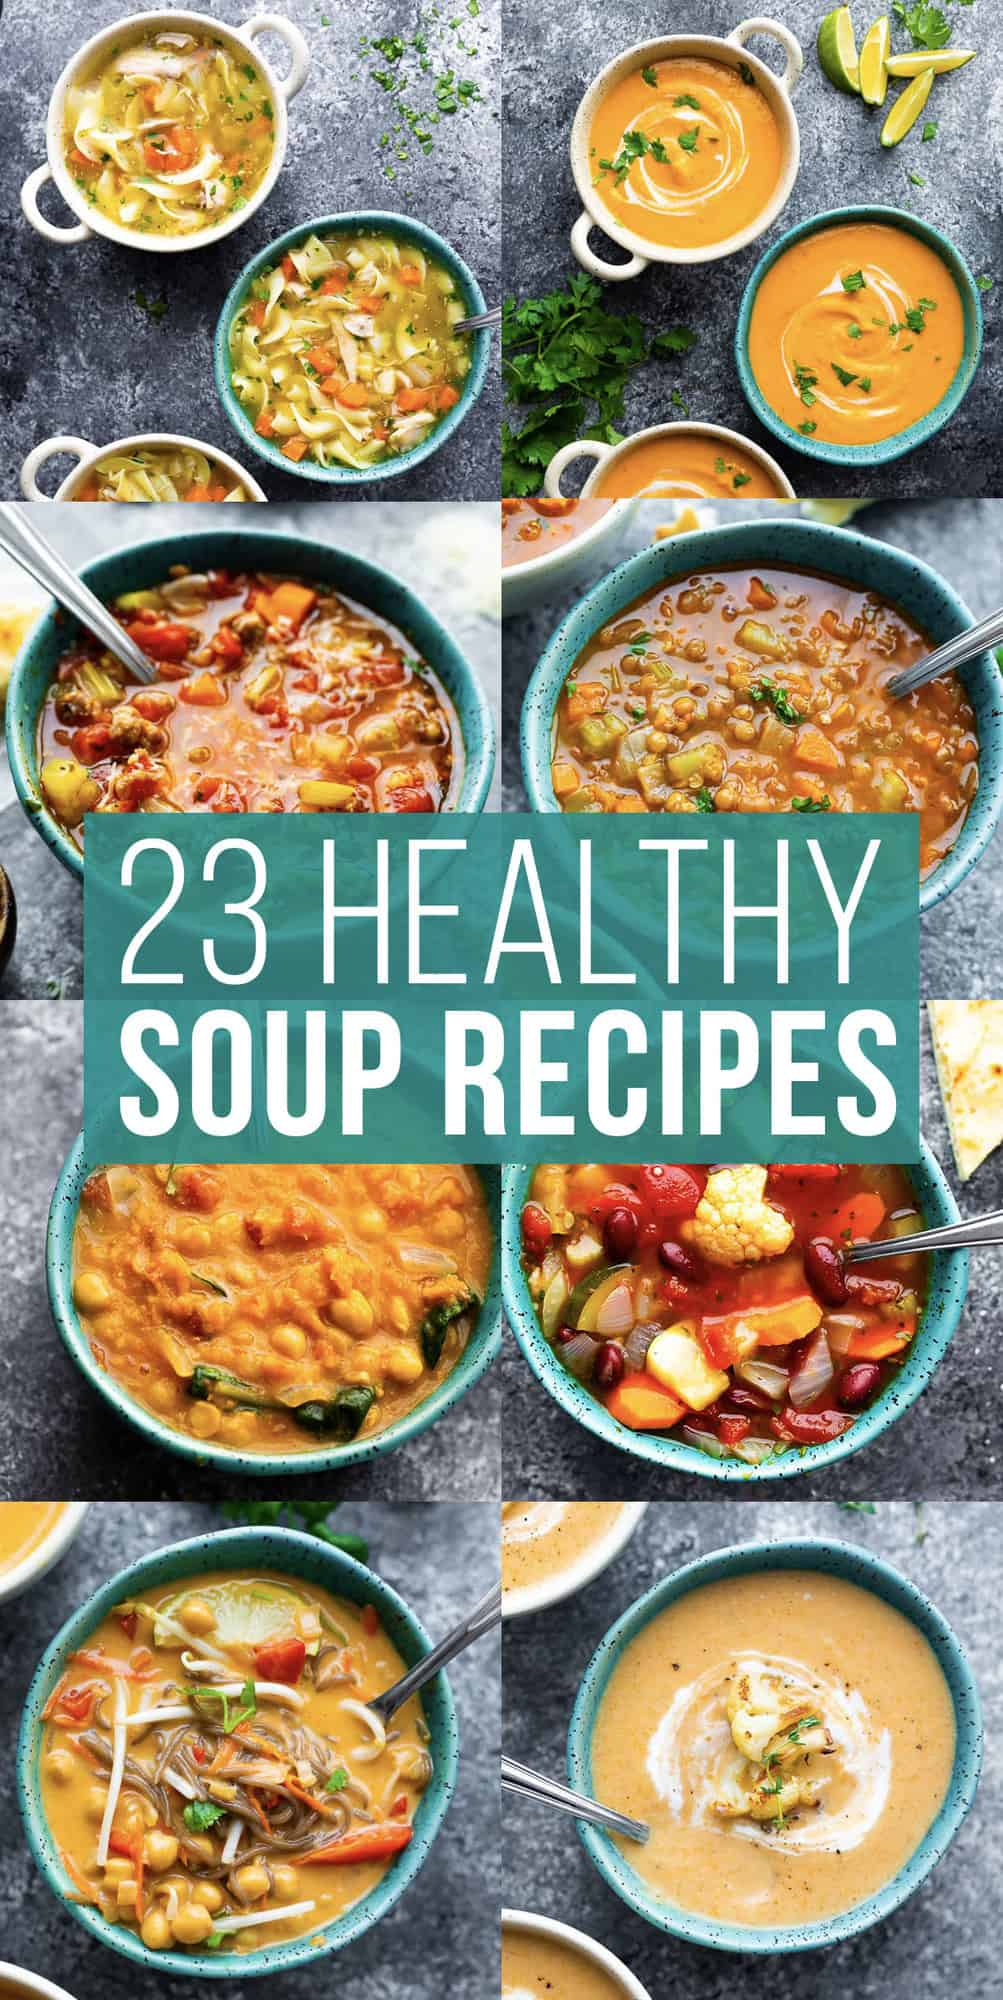 collage image with photos of soup that says '23 healthy soup recipes'